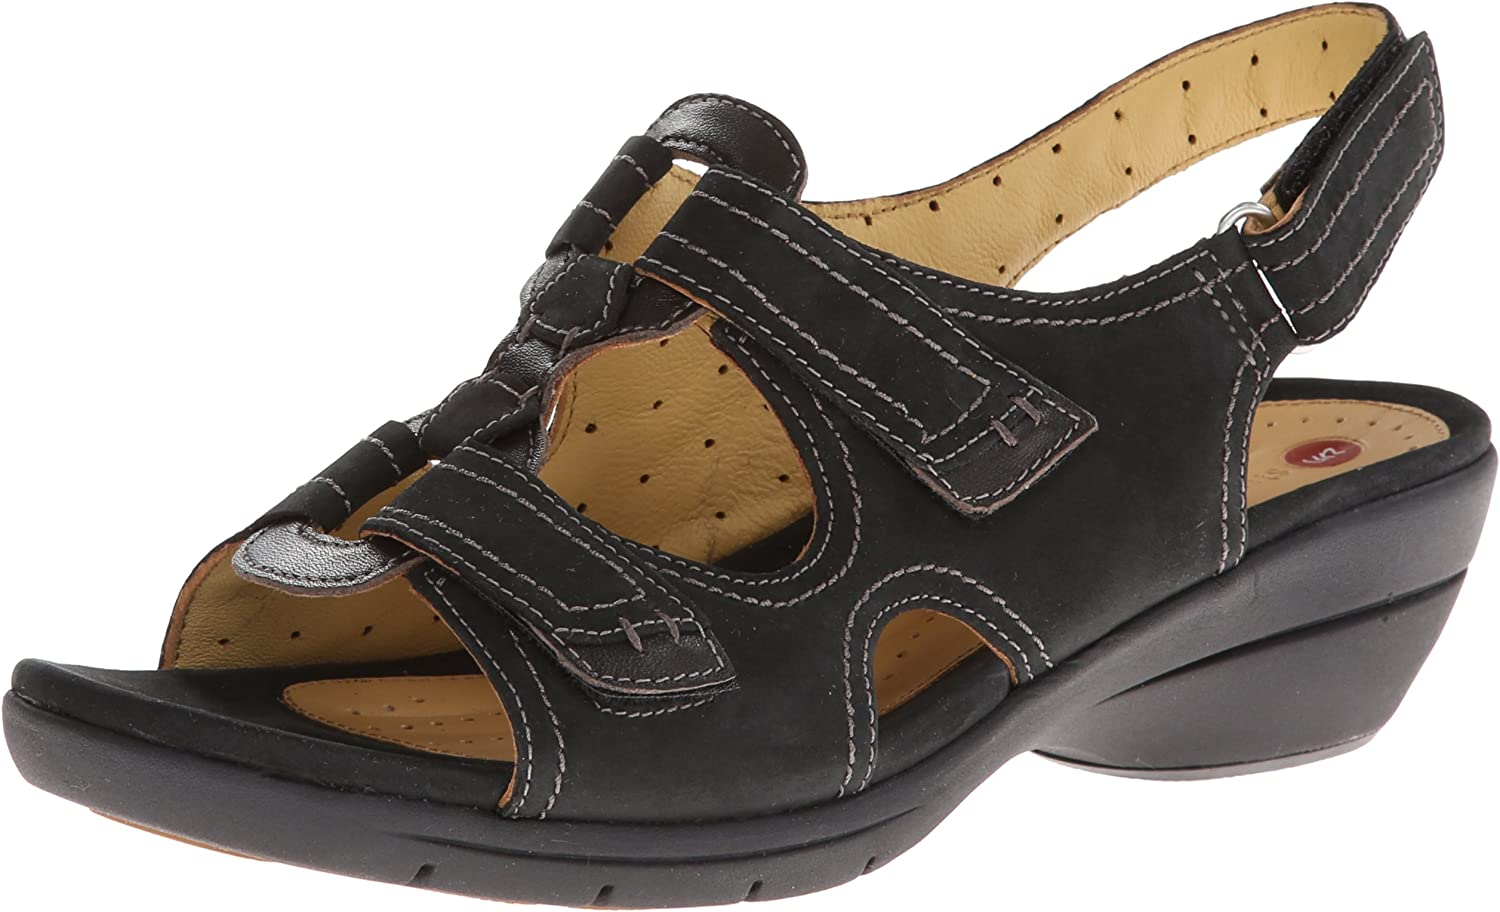 Clarks Women's Orlanda Wedge Sandal